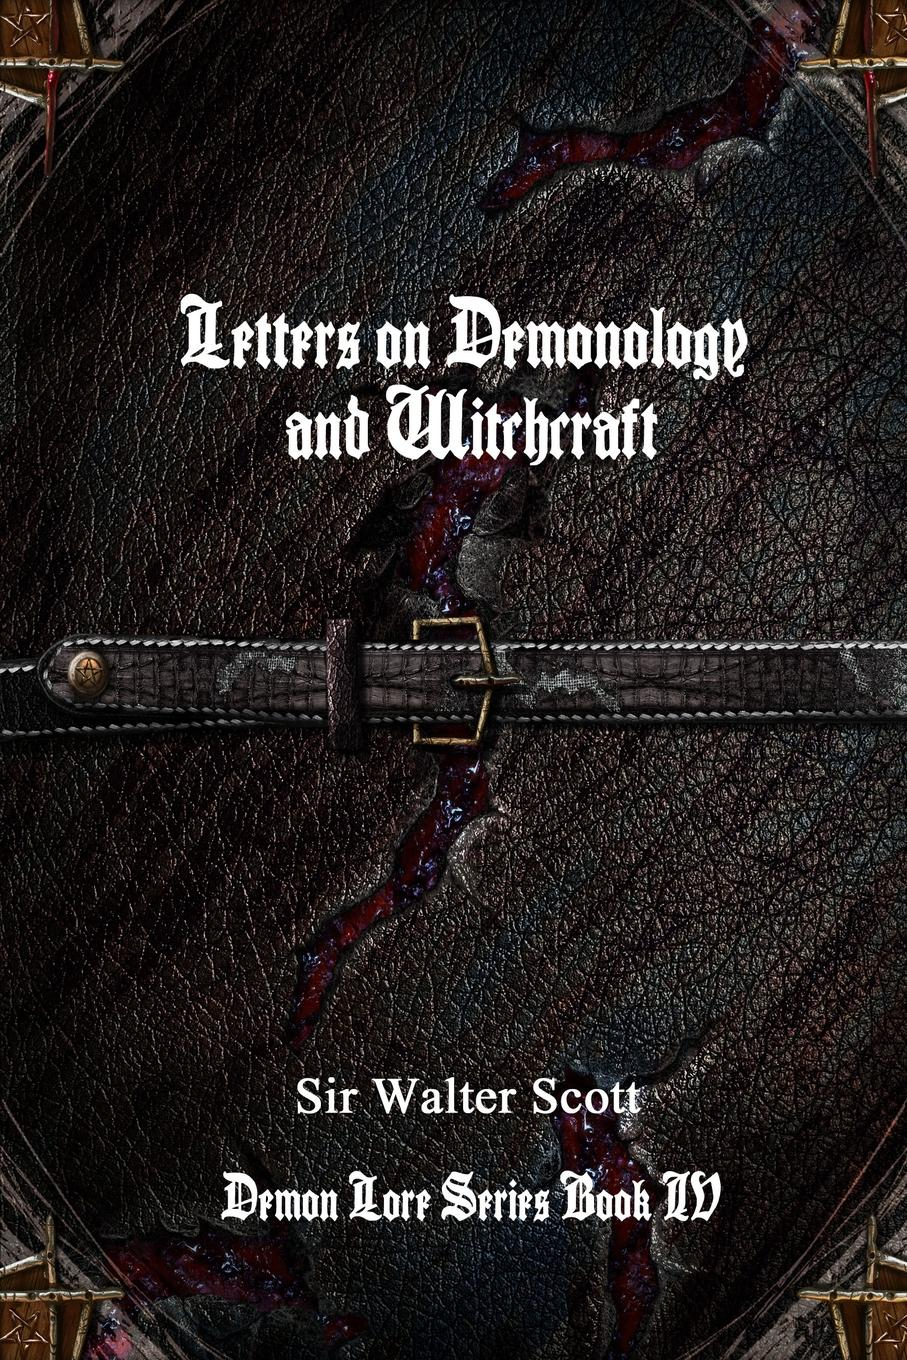 Sir Walter Scott Letters on Demonology and Witchcraft in the midst of life